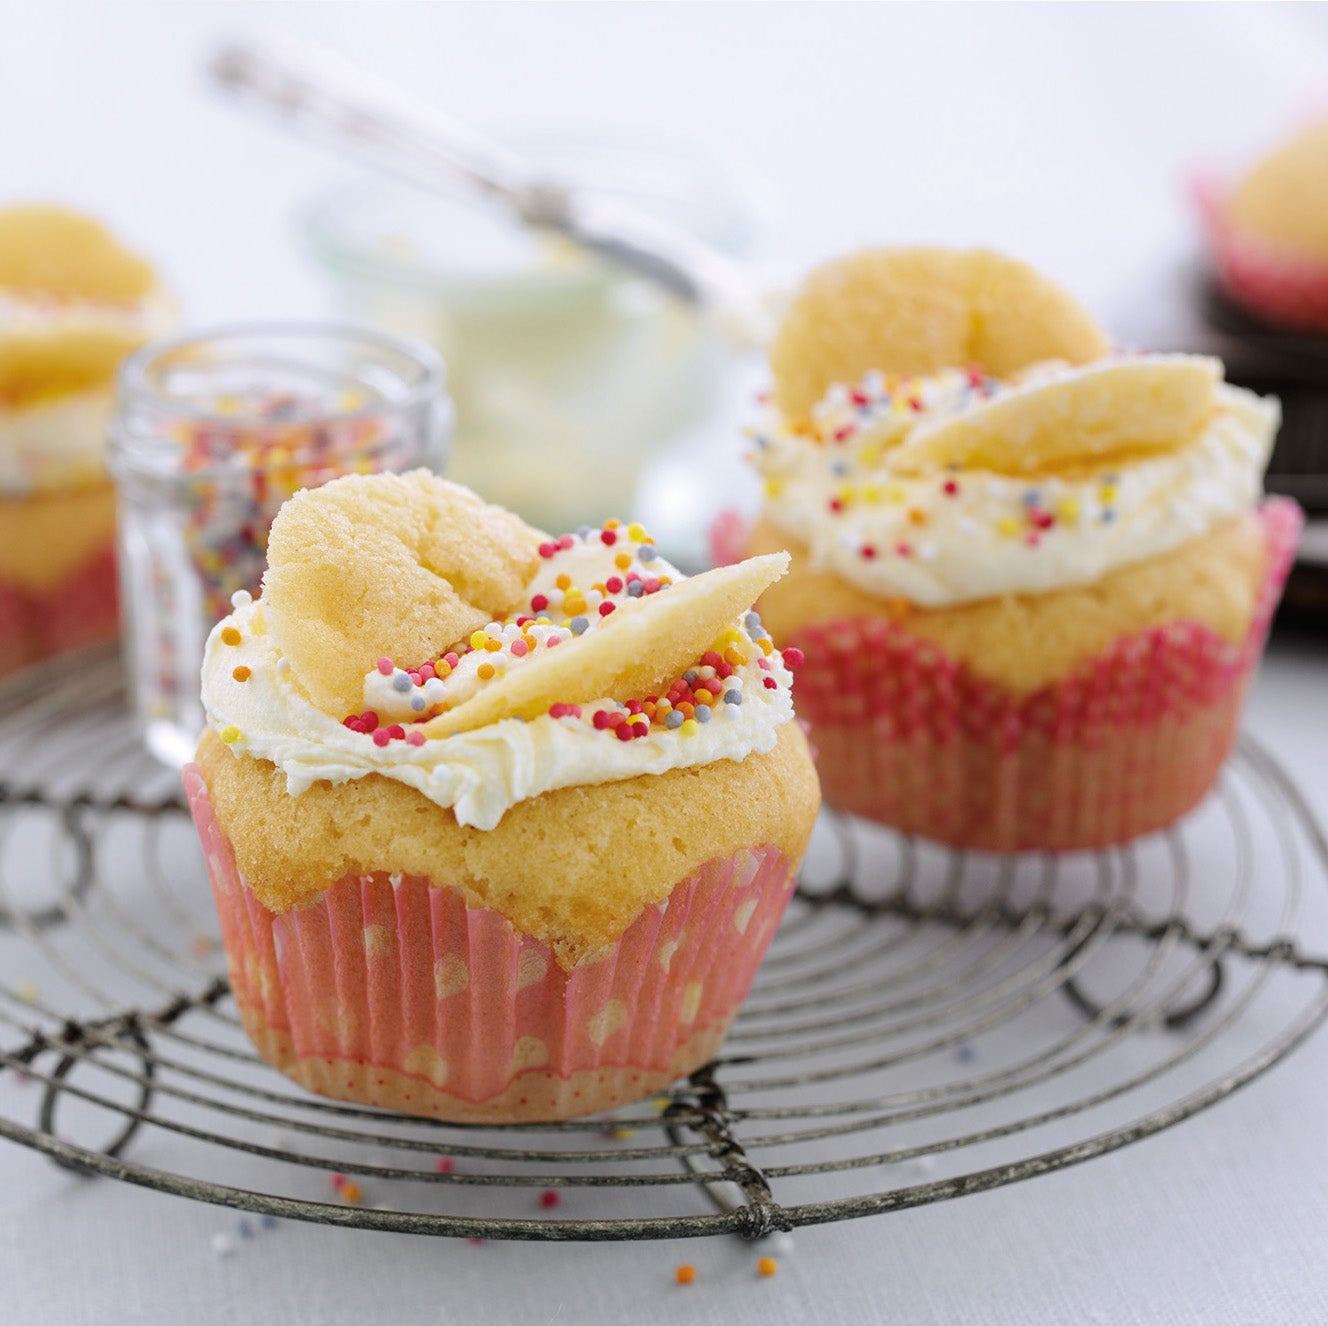 St Clements butterfly cakes